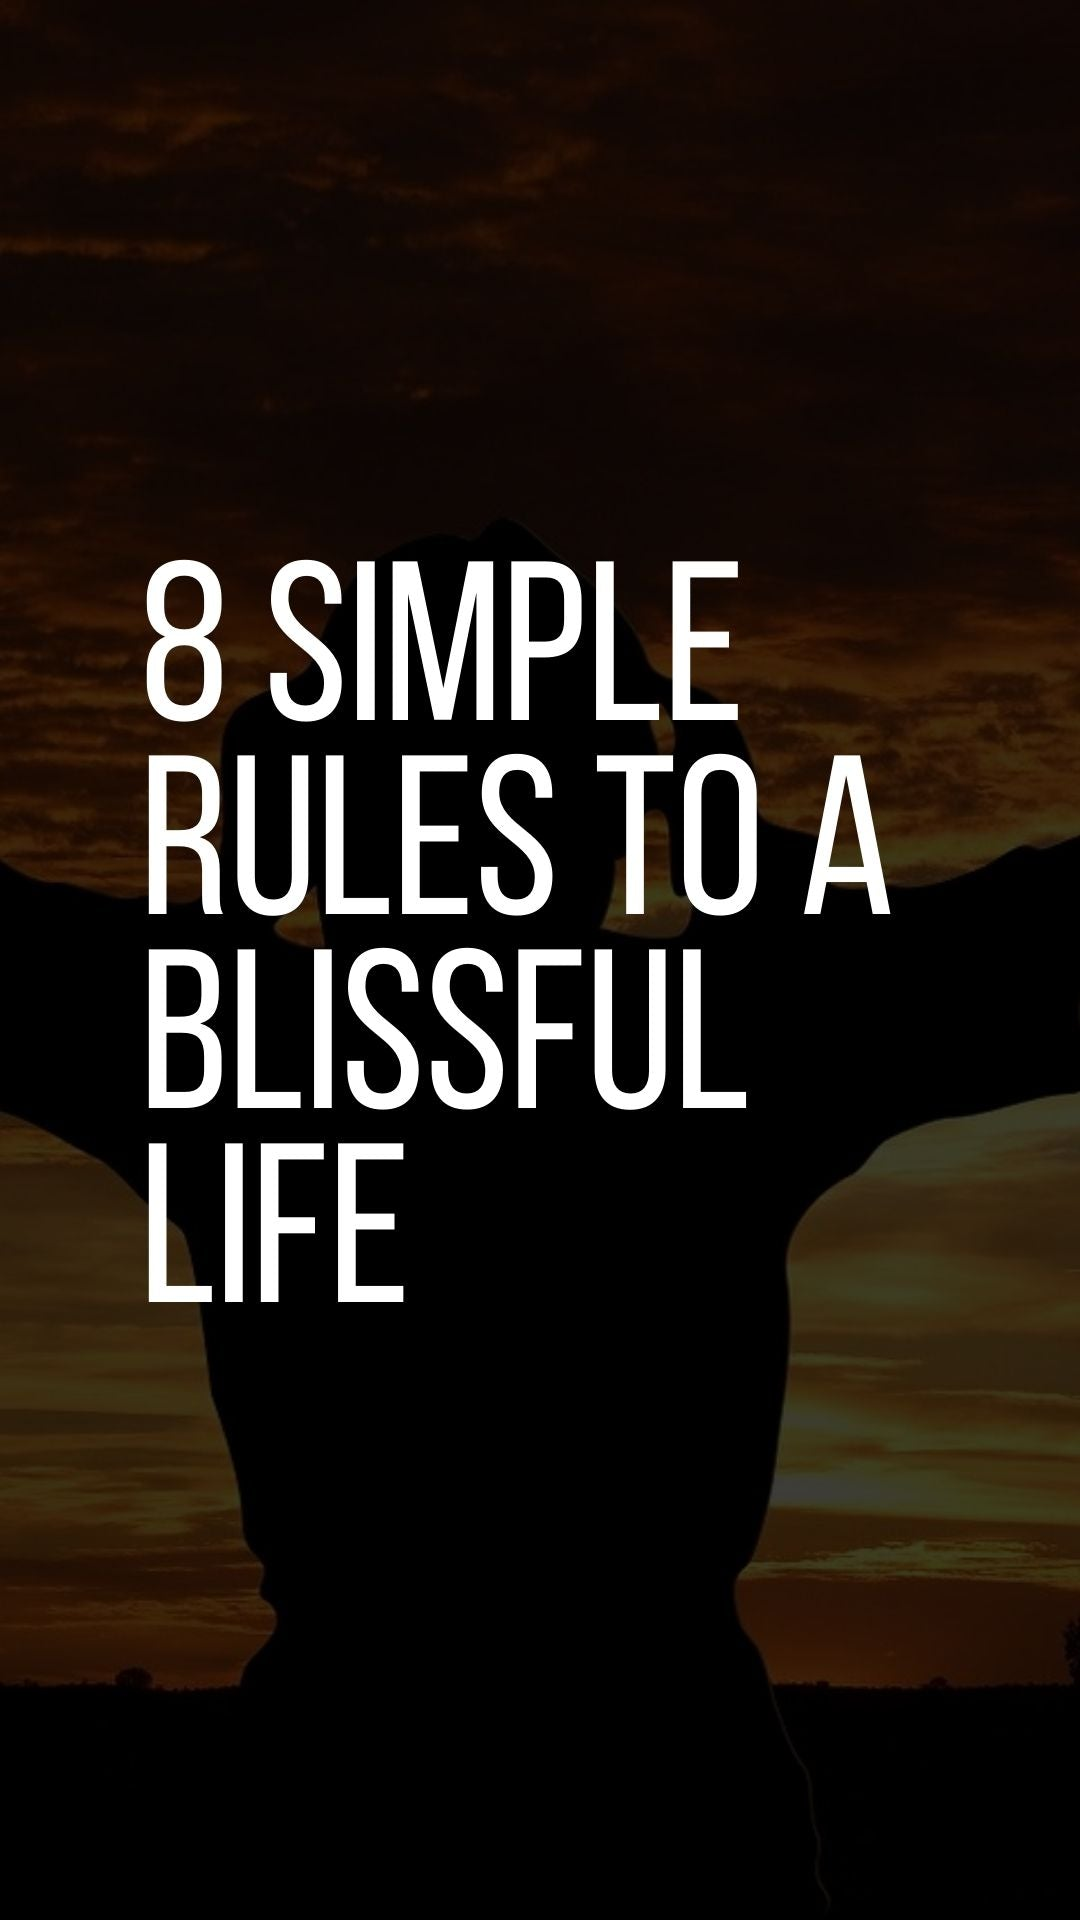 How to lead a Blissful Life? 8 Simple Rules!!!